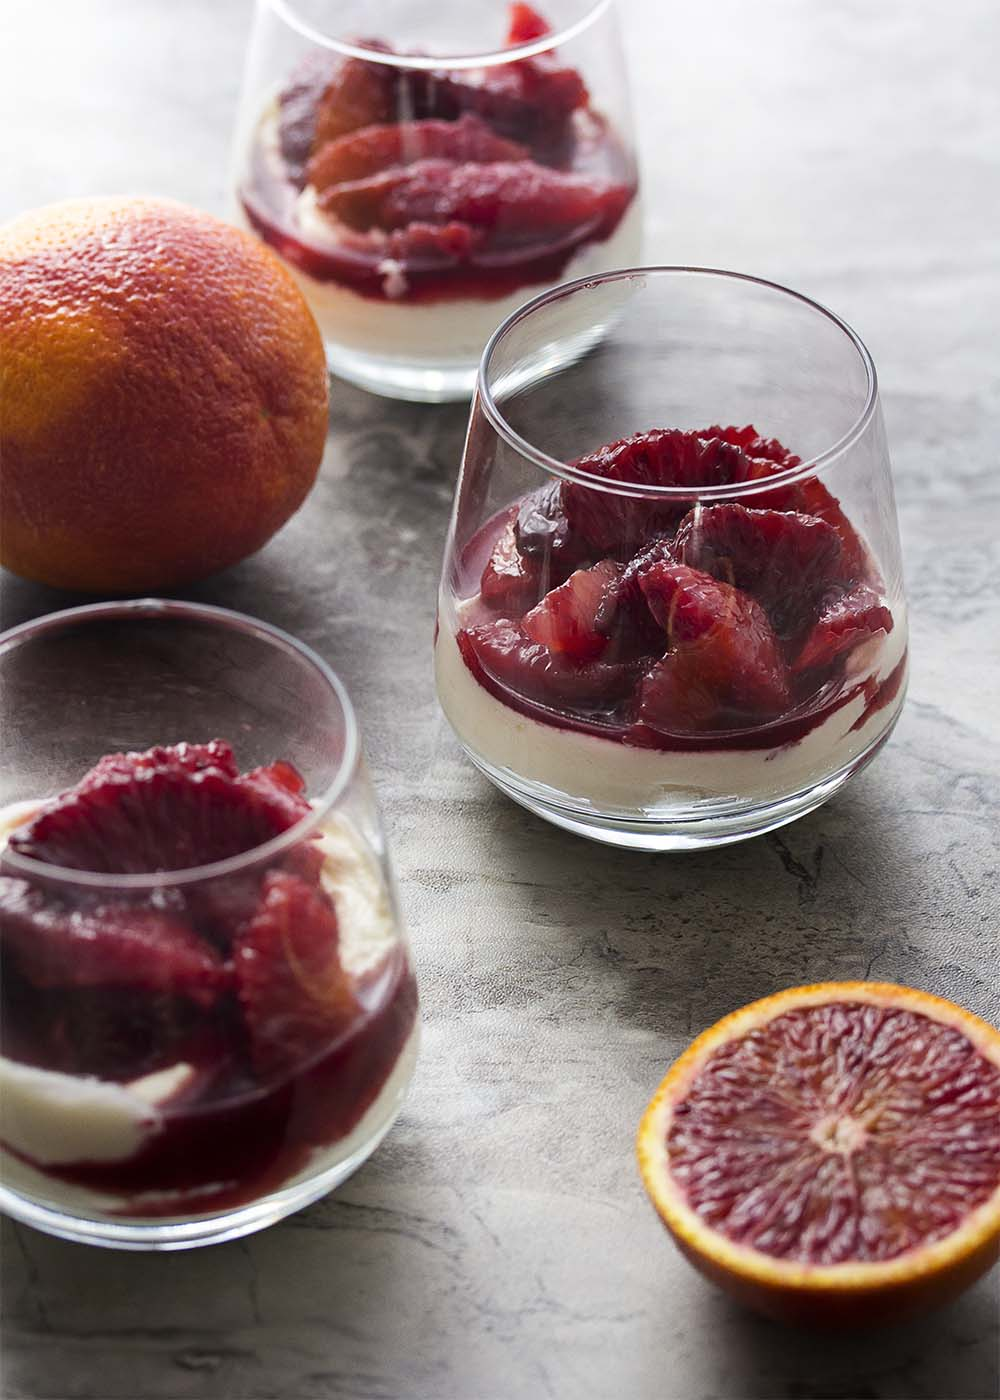 Ruby red and cinnamon spiced, this blood orange compote is a beautiful and intensely flavored sauce perfect for spooning over creamy mascarpone mousse. | justalittlebitofbacon.com